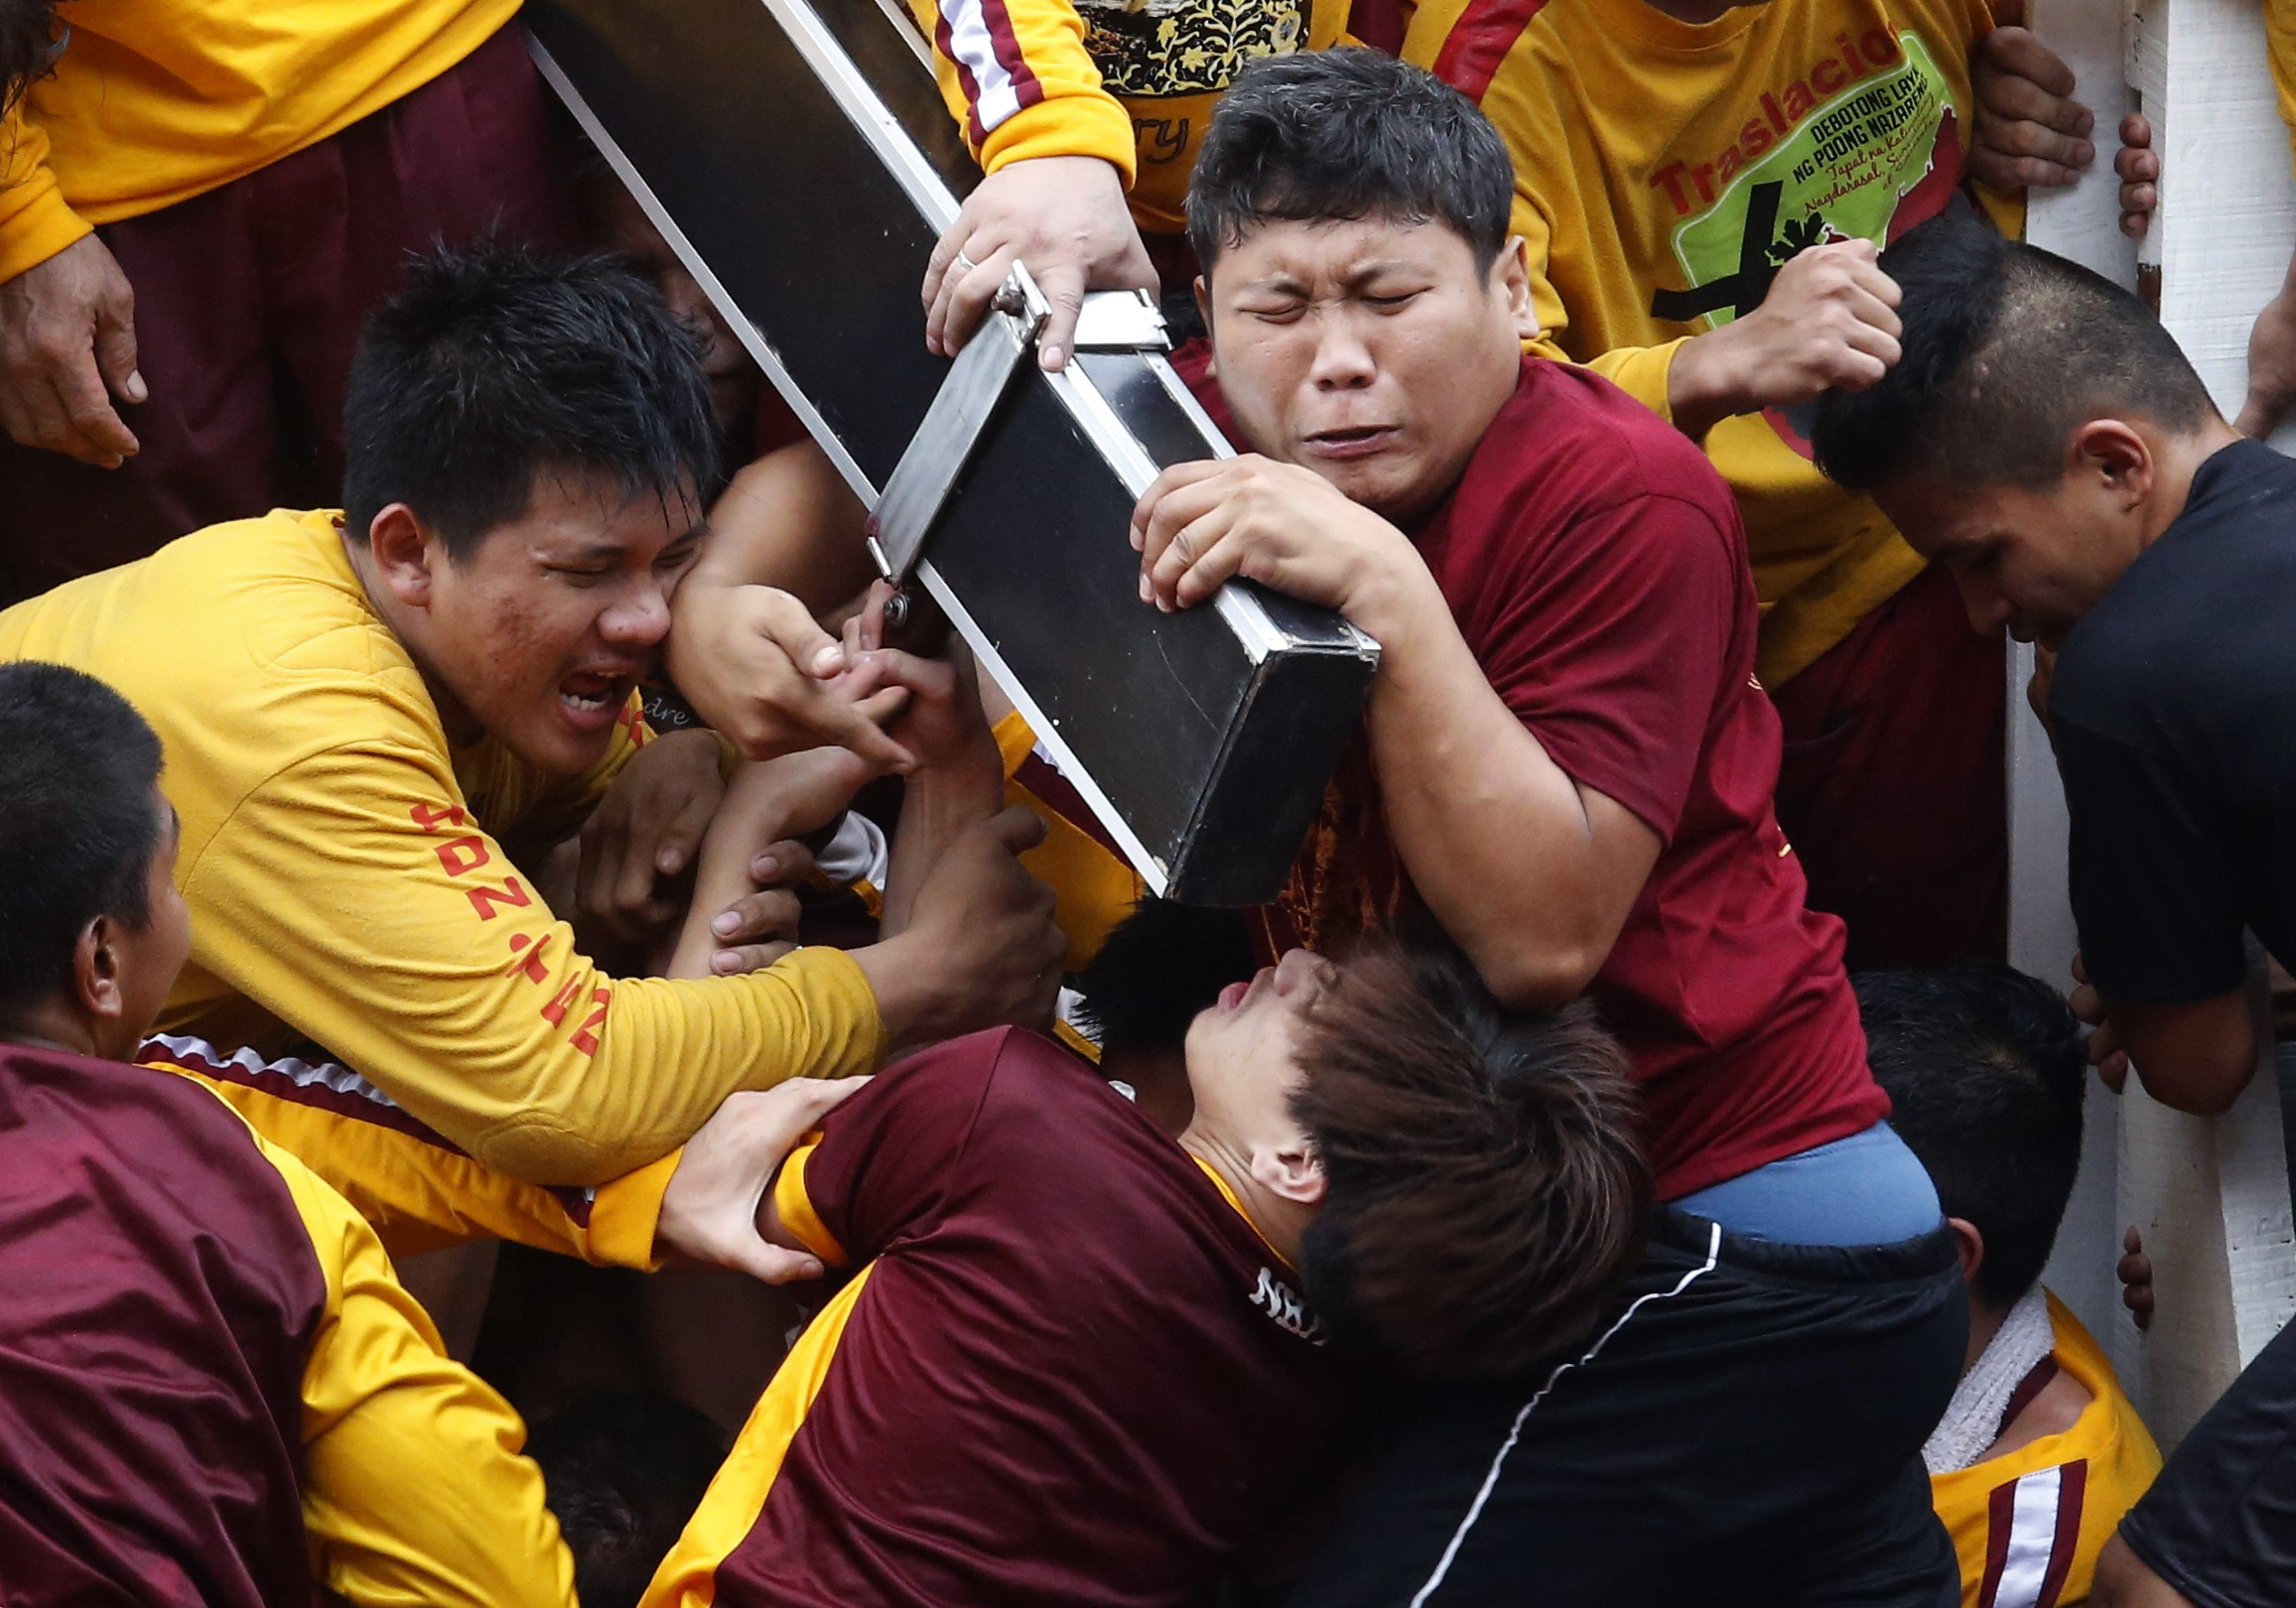 Devotees grimace as they try to hold the Black Nazarene, which is atop a carriage, at the start of an annual procession in Manila